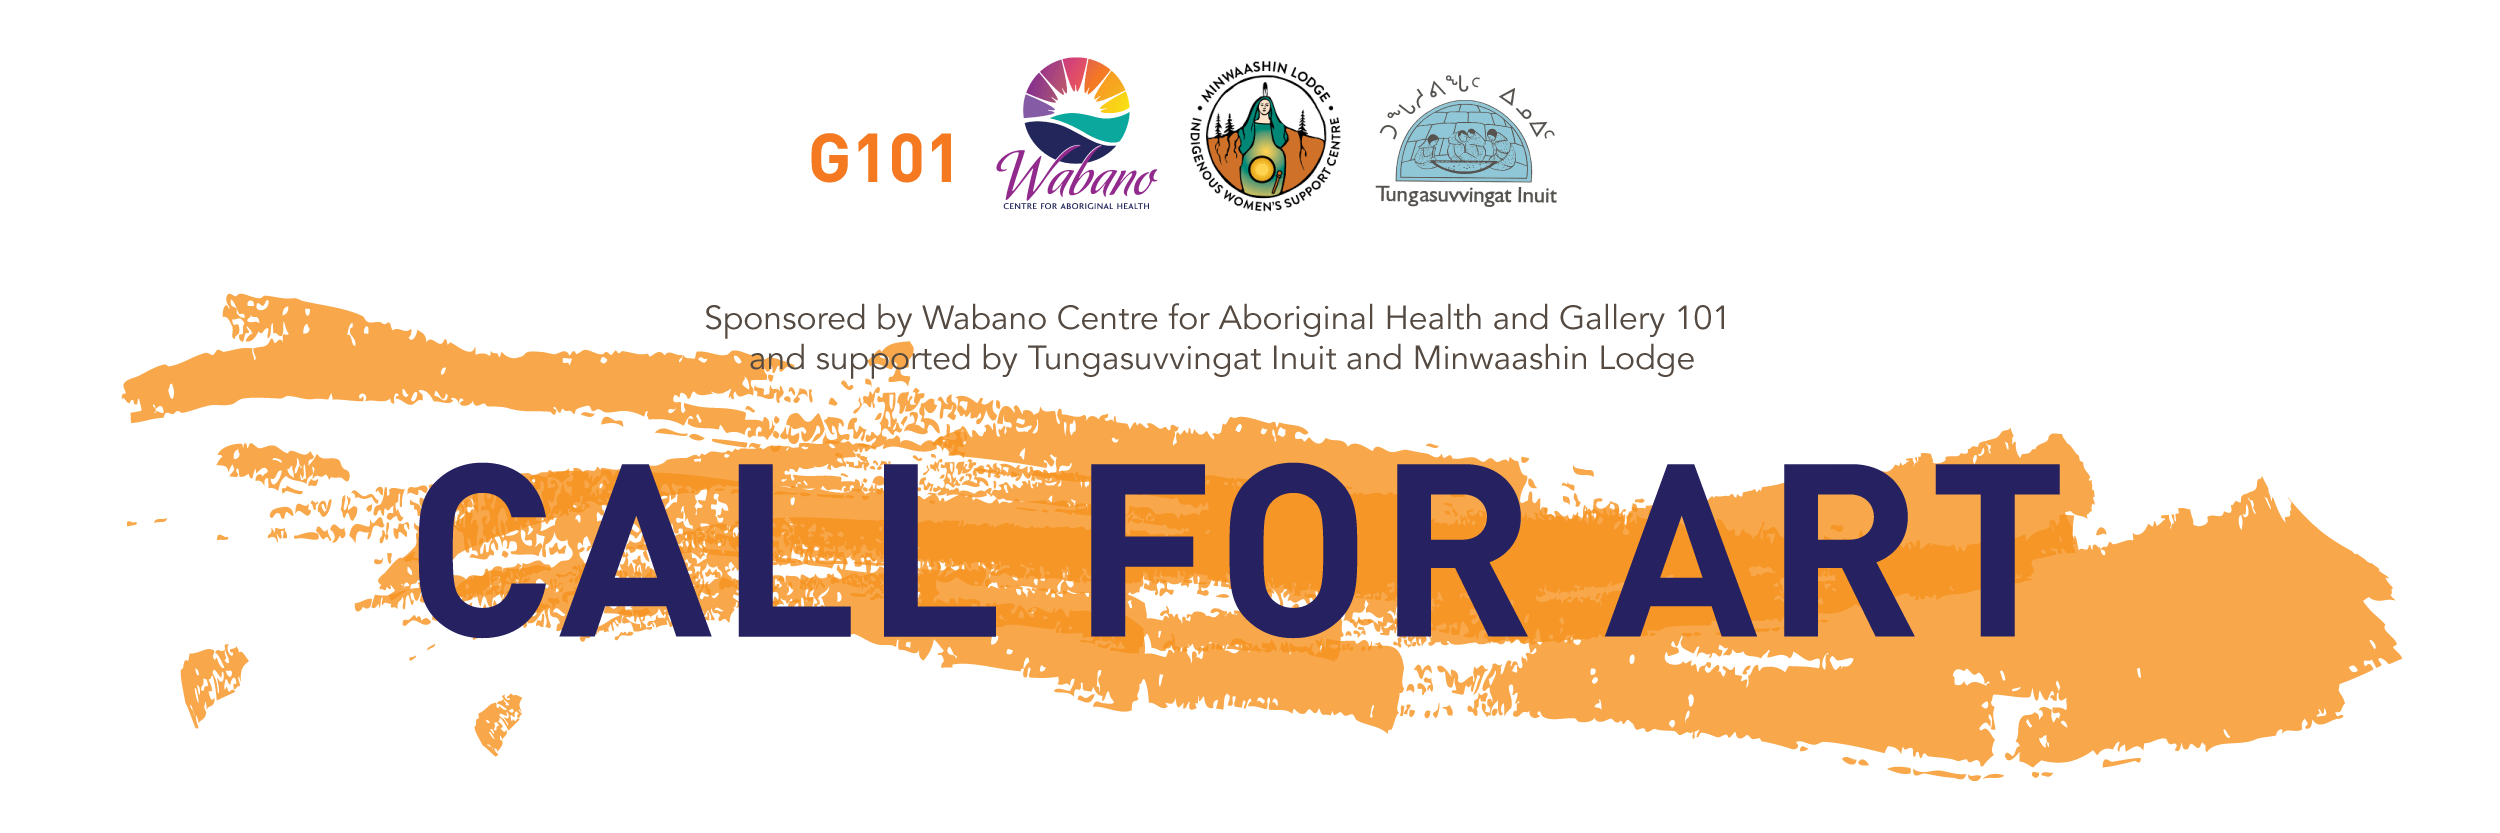 Call for Art Banner with logos from Gallery 101, Wabano, Minwaashin, and Tungasuvvingat